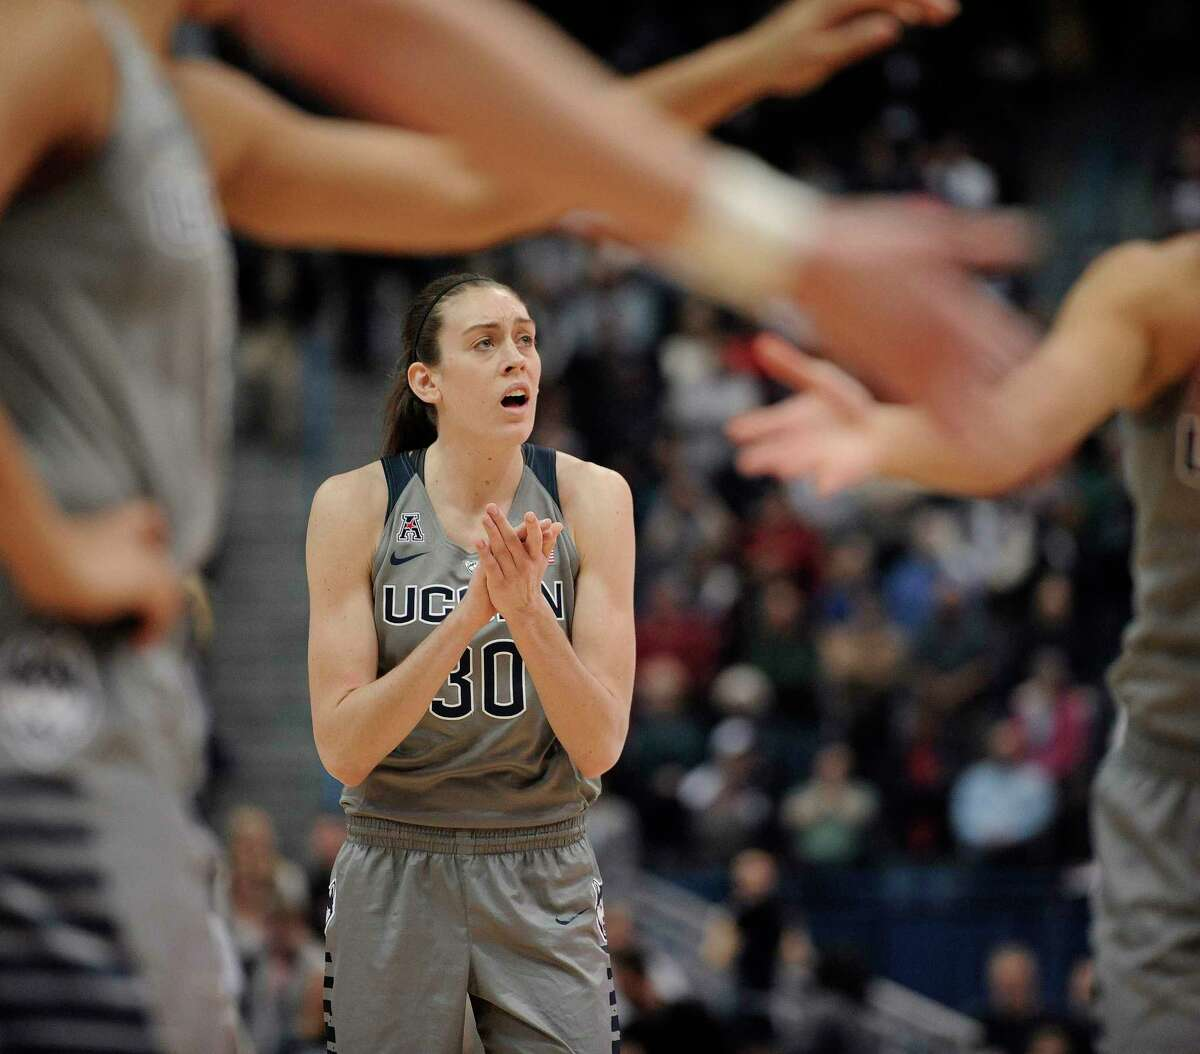 UConn's Breanna Stewart needs two blocked shots to reach 300 for her career.